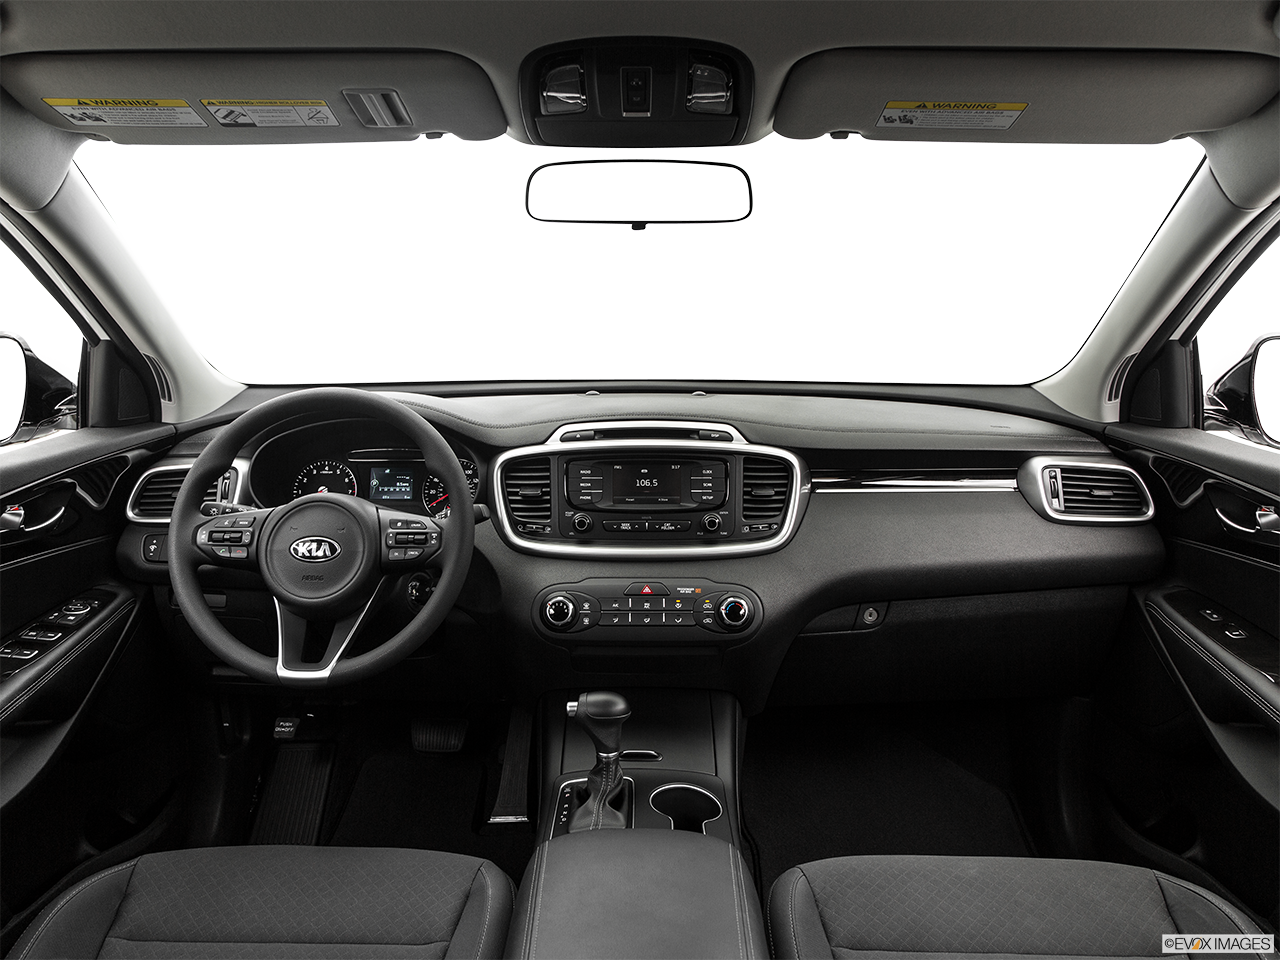 Interior View Of 2017 KIA Sorento at KIA Cerritos